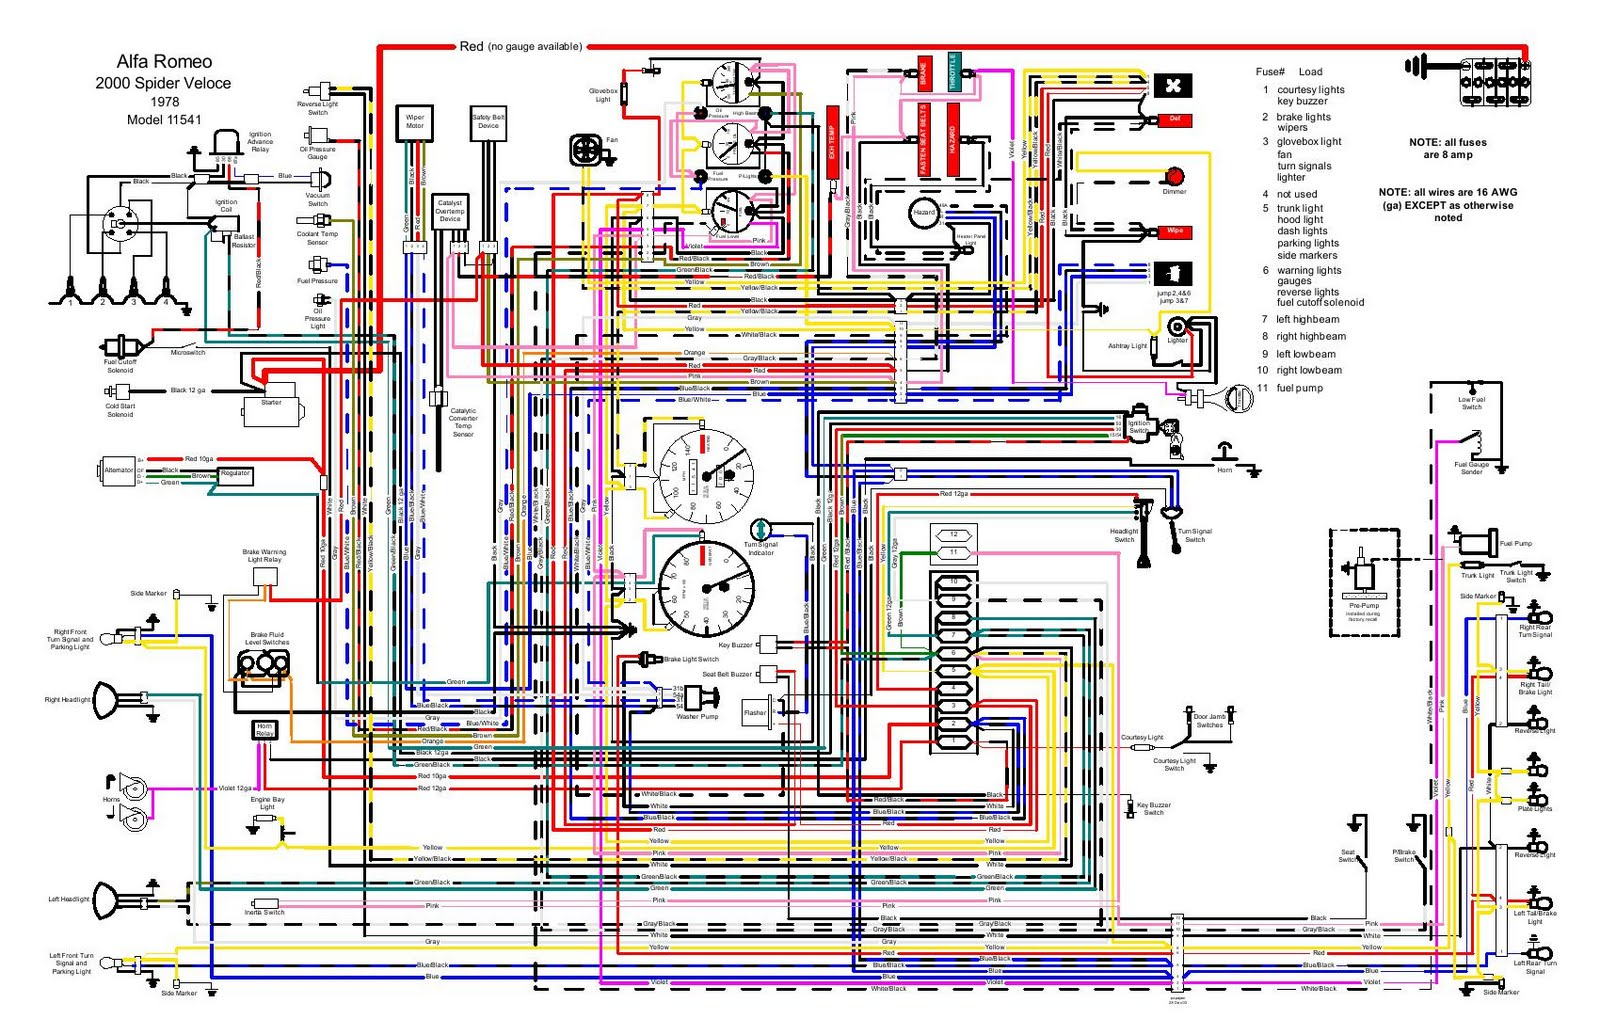 wiring diagram for 1978 alfa romeo spider CHaEWjz wiring diagrams cars readingrat net wiring schematics for cars at edmiracle.co